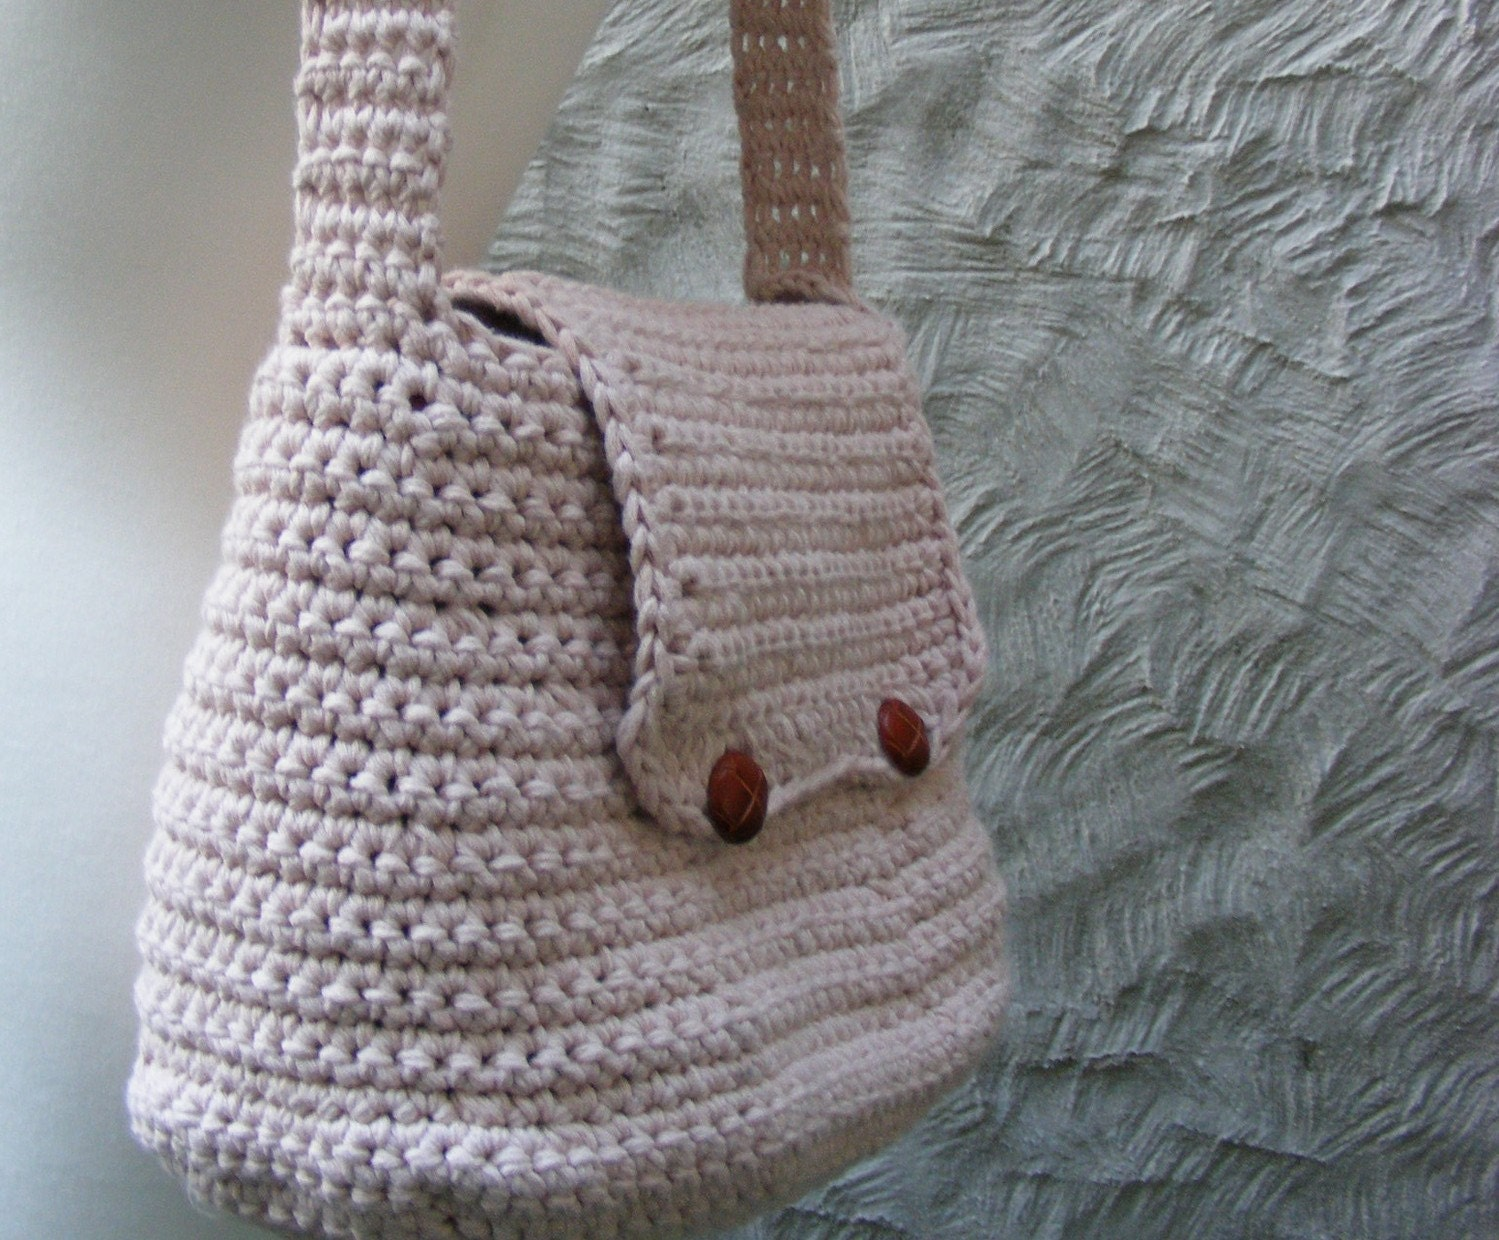 Crochet Handbag Pattern : Crochet Patterns For Beginners Bag Patterns Crochet Hobo Bag